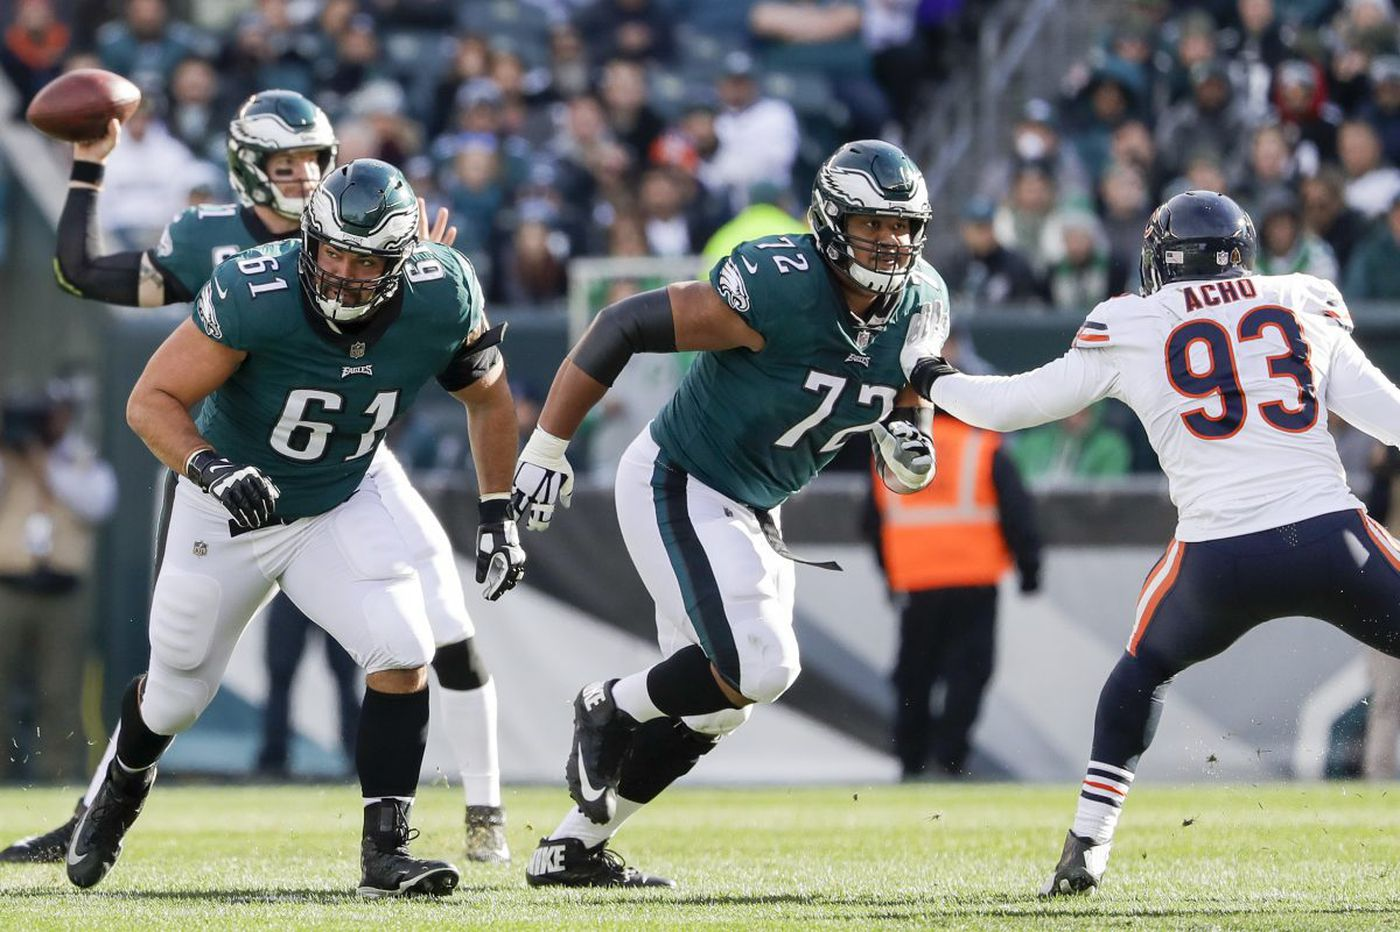 Eagles-Vikings scouting report | Paul Domowitch